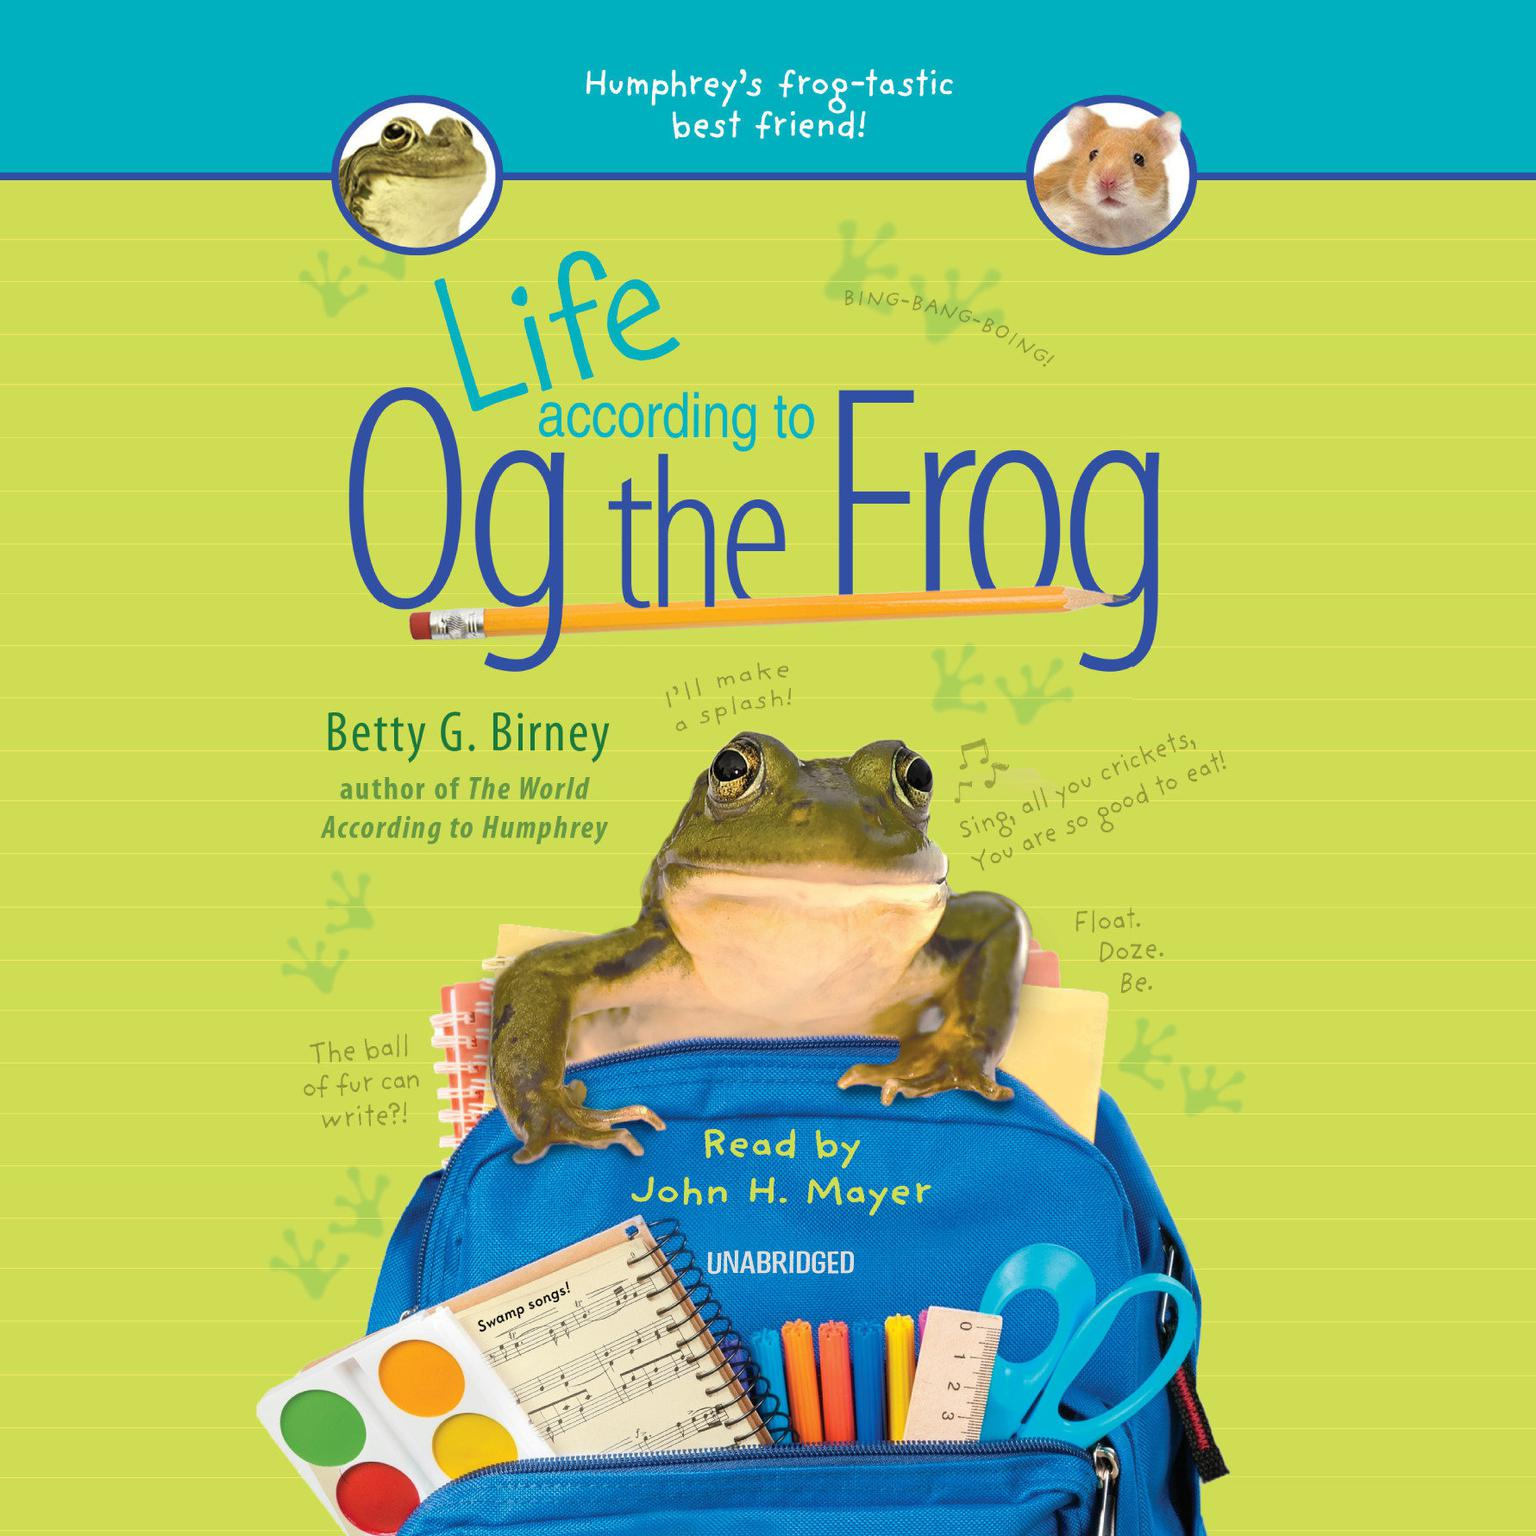 Life According to Og the Frog Audiobook, by Betty G. Birney